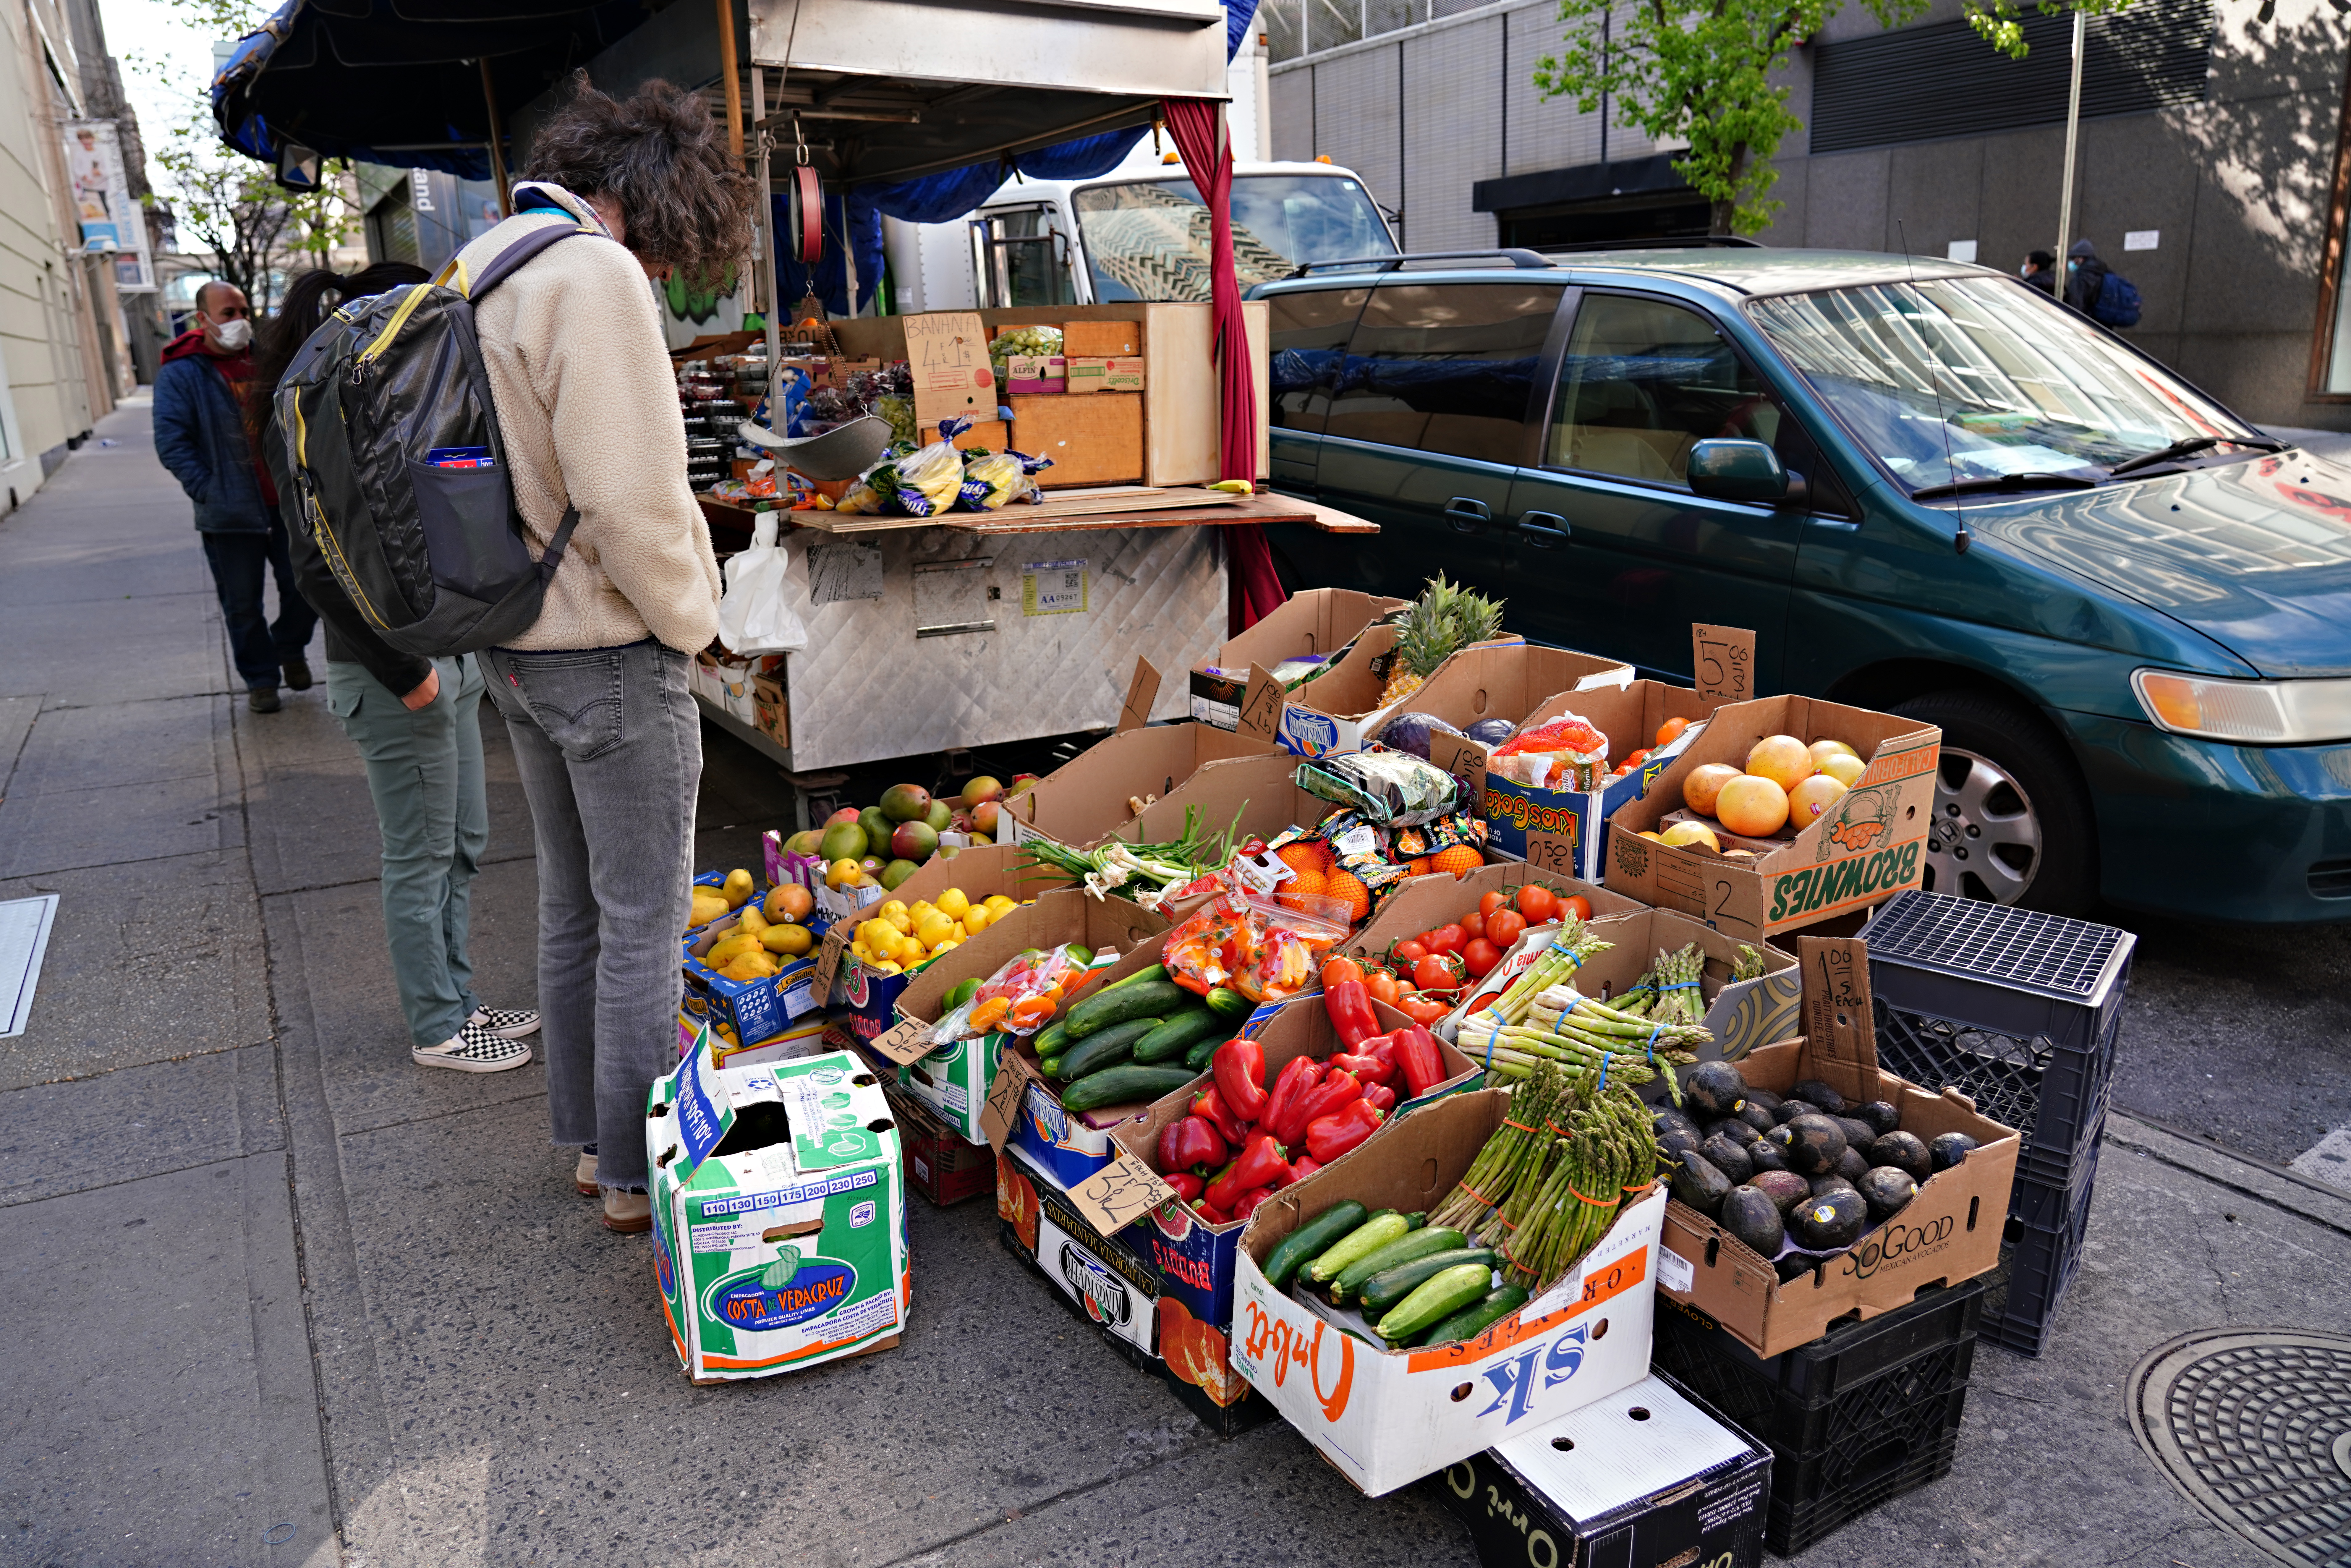 A man shops for produce at a sidewalk stand during the coronavirus pandemic on April 12, 2020 in New York City.